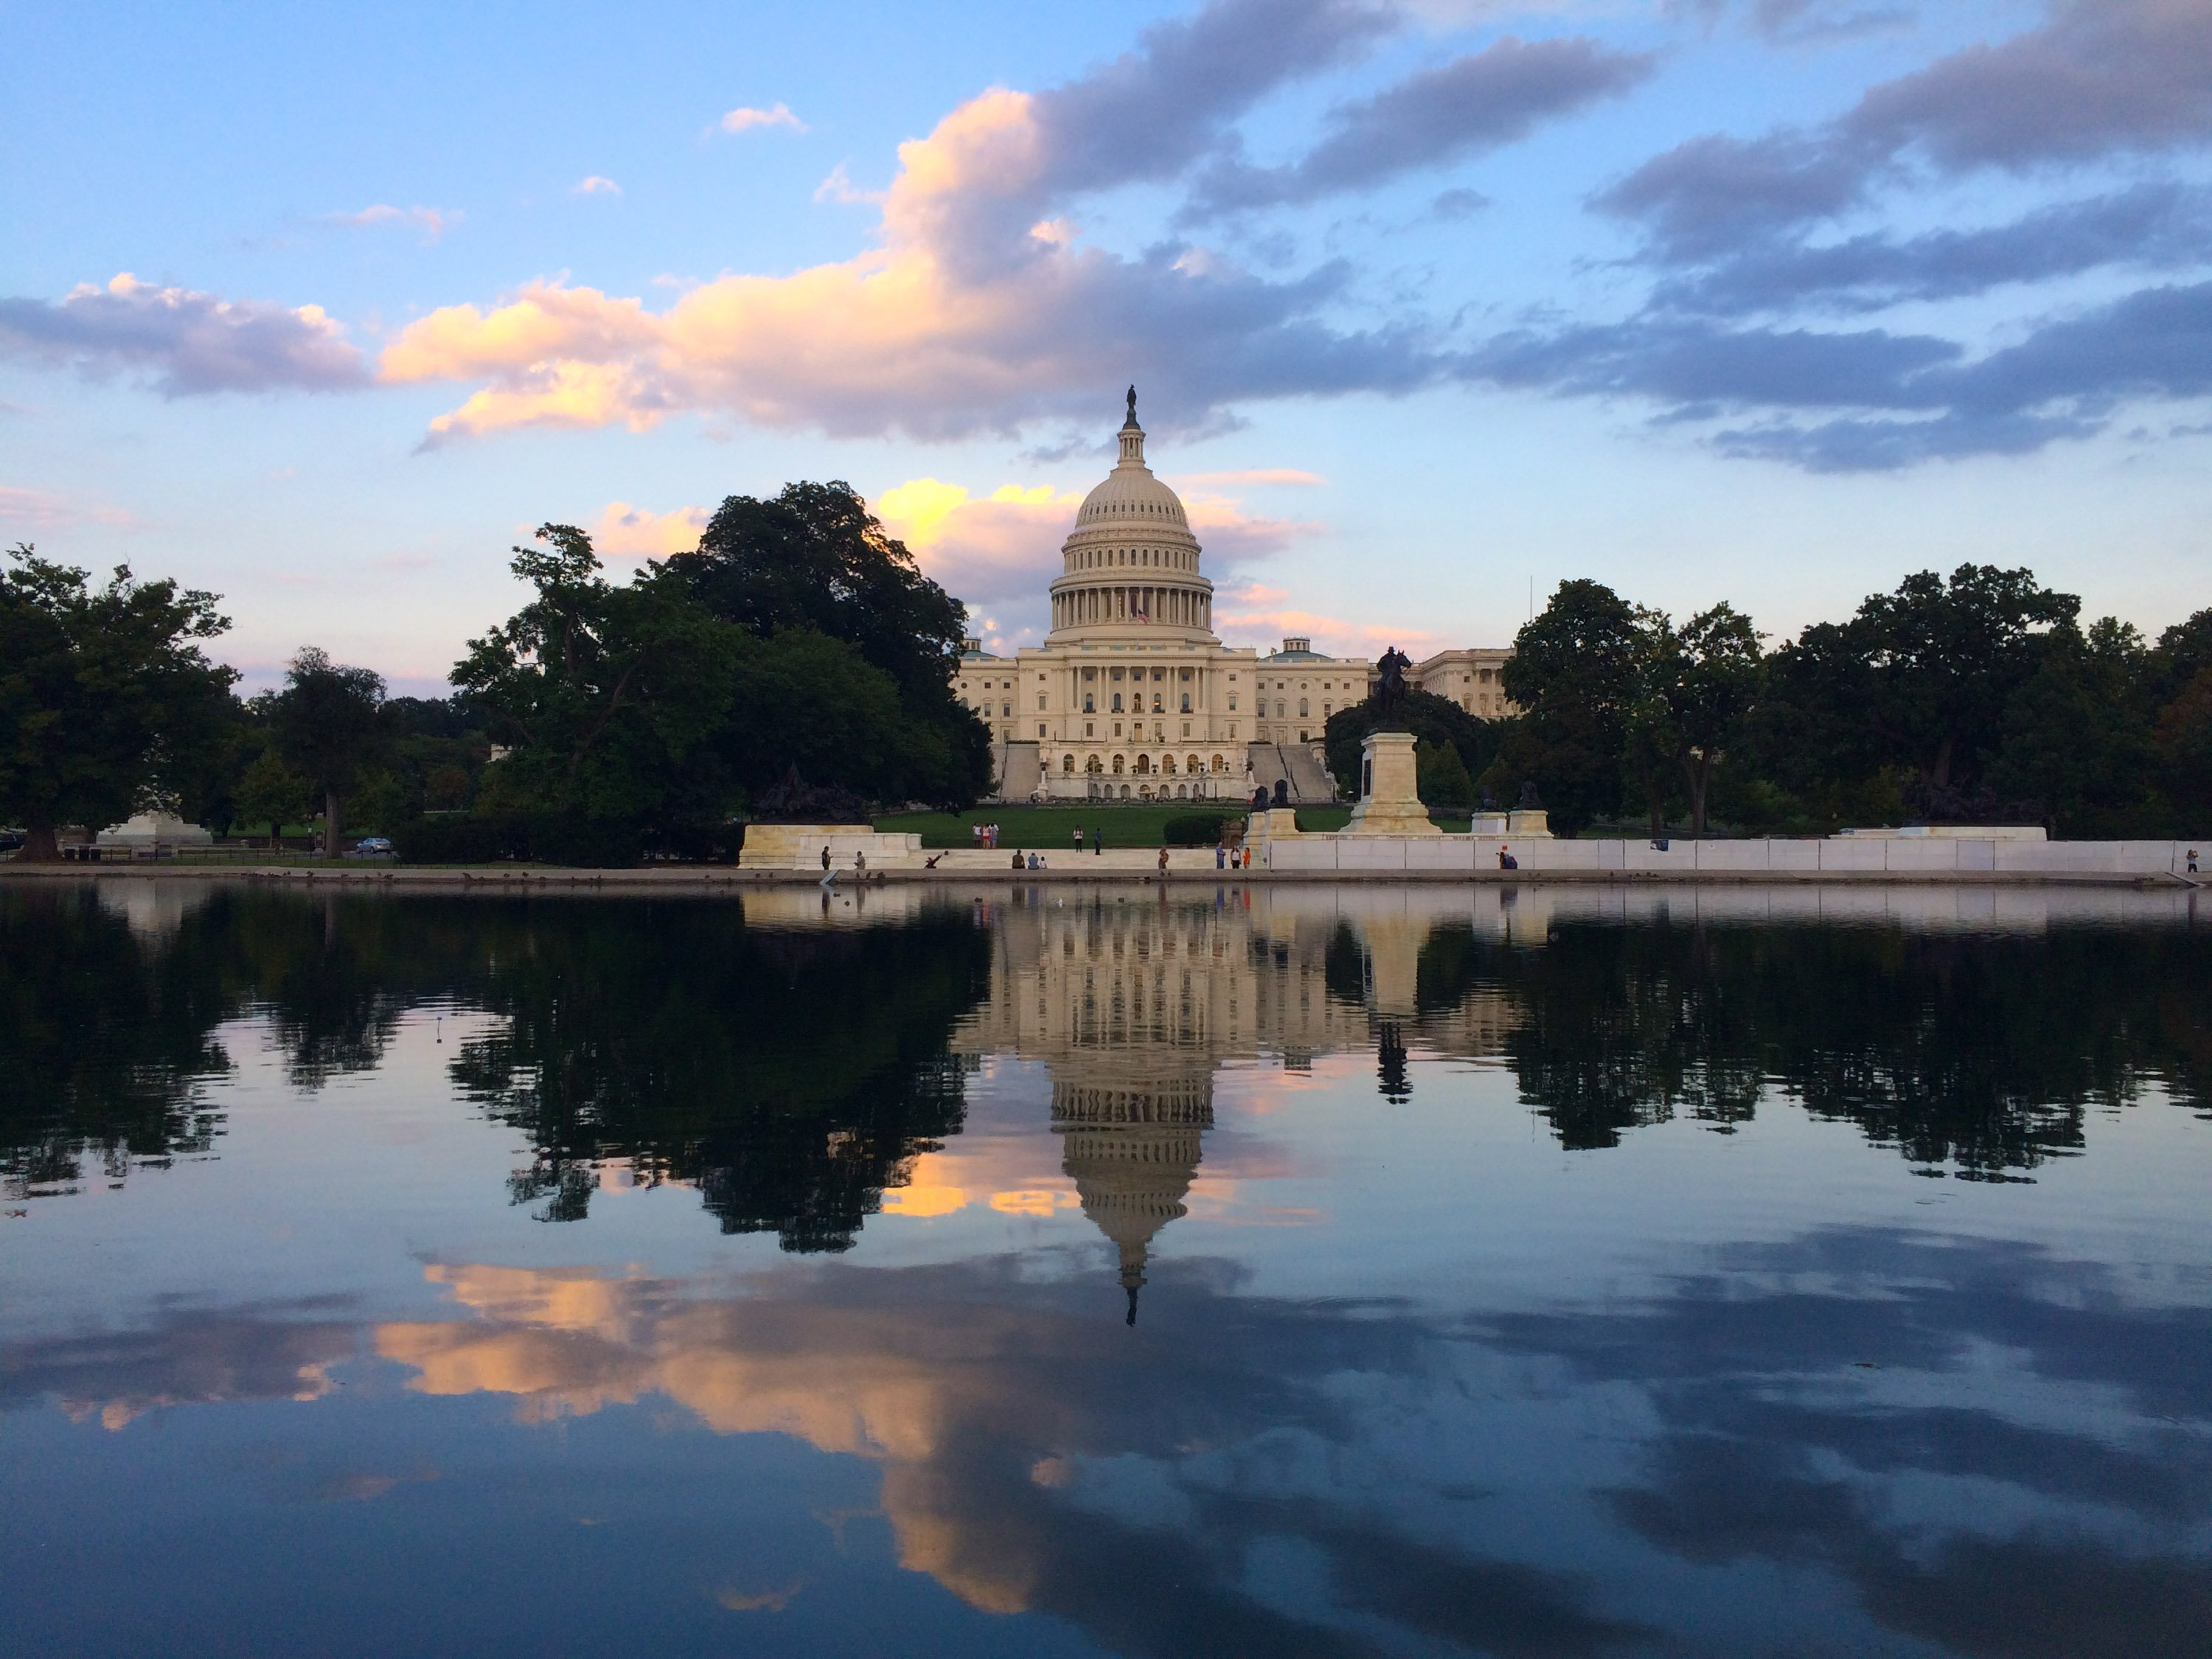 There is so much to do in DC and you can do it all without spending a dime! Here is a list of free things to do in Washington DC.